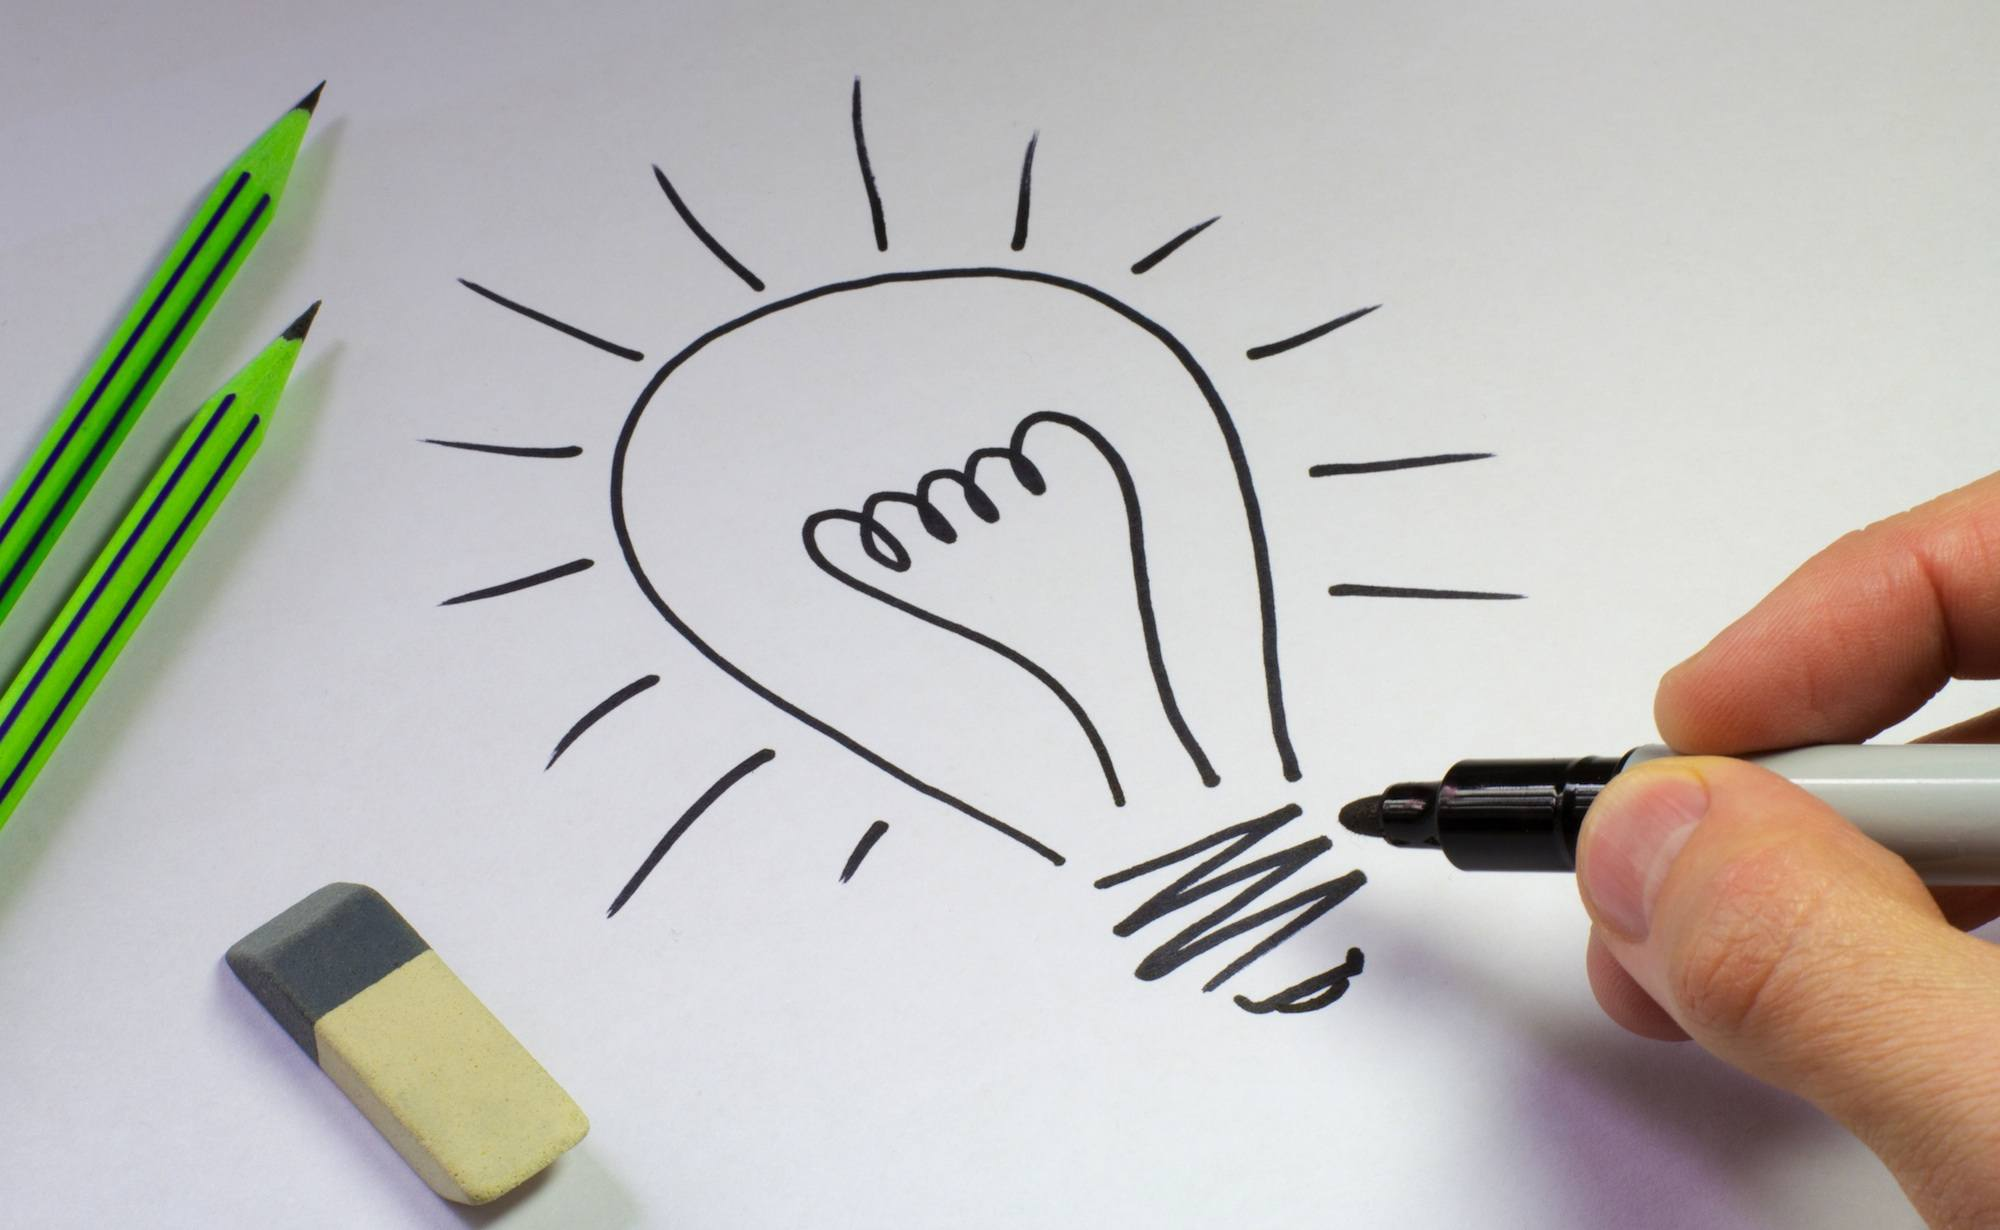 How to Crack One Big Idea to Ignite a Startup